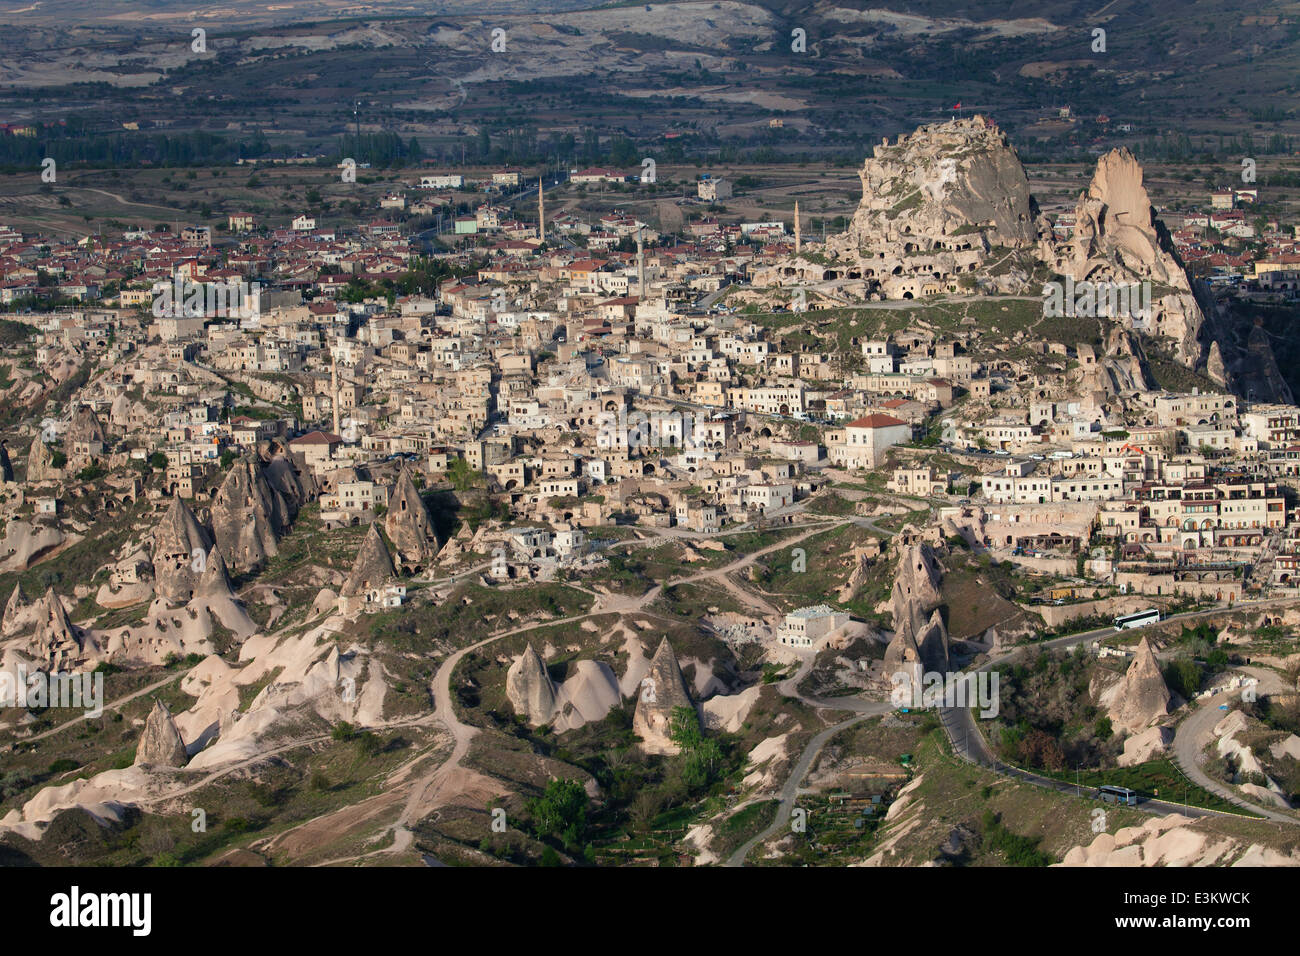 Aerial view of Uchisar Castle in Nevsehir, Turkey - Stock Image